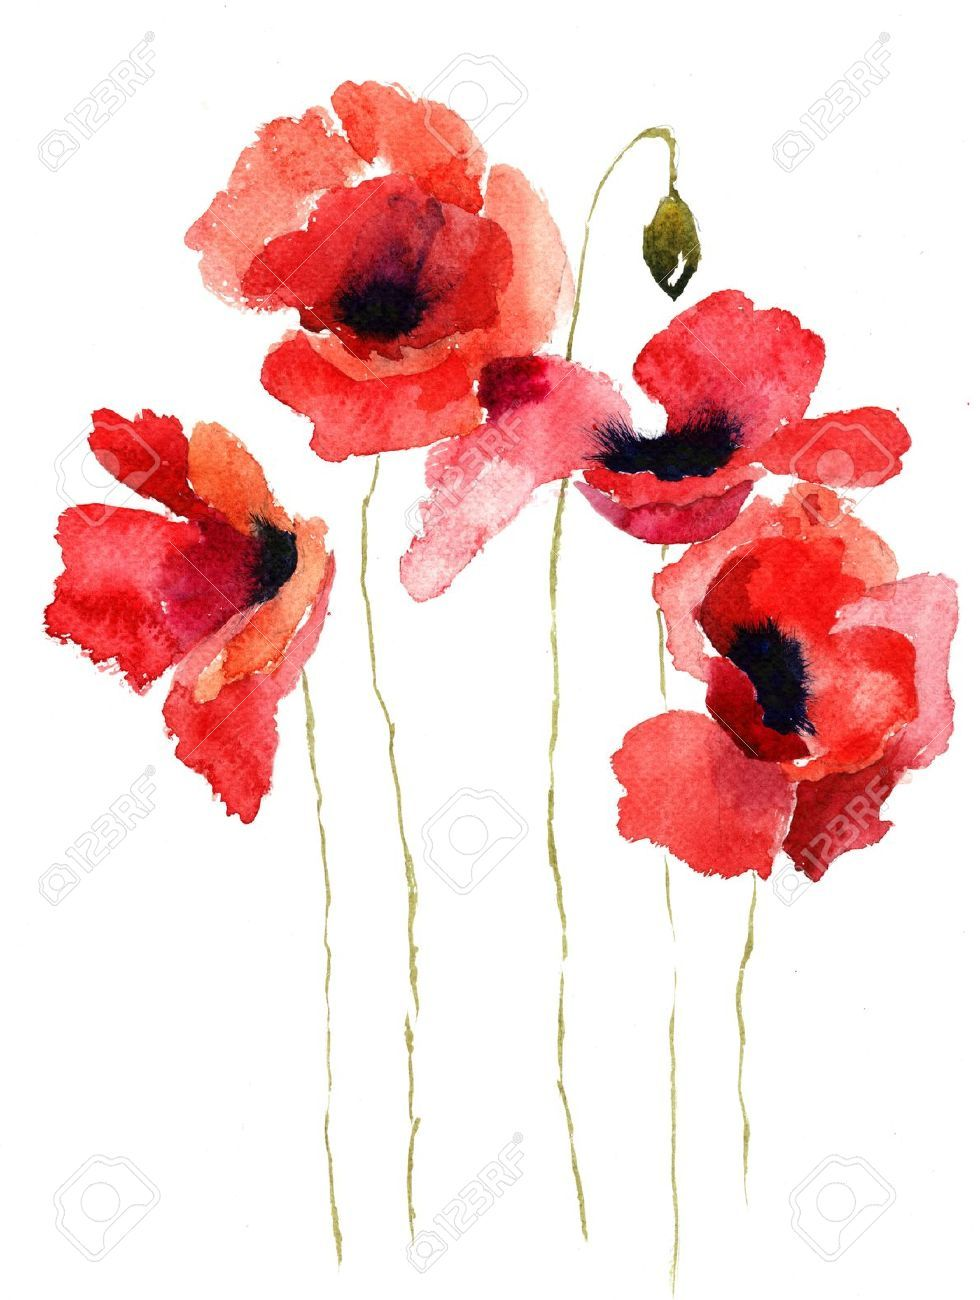 Pin by ou2 tre on poppies mak pinterest watercolor watercolor buy the royalty free stock image watercolor poppy flower online all image rights included high resolution picture for print web social media mightylinksfo